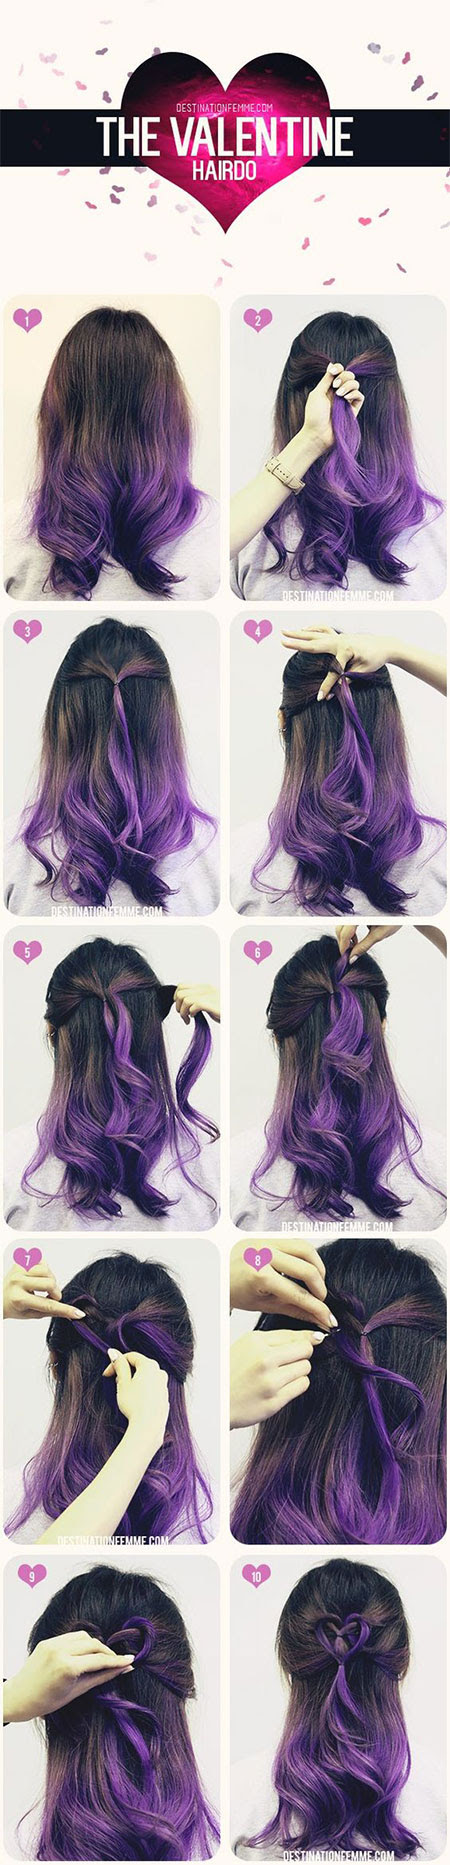 Easy Valentines Day Hairstyle Tutorials For Beginners Learners